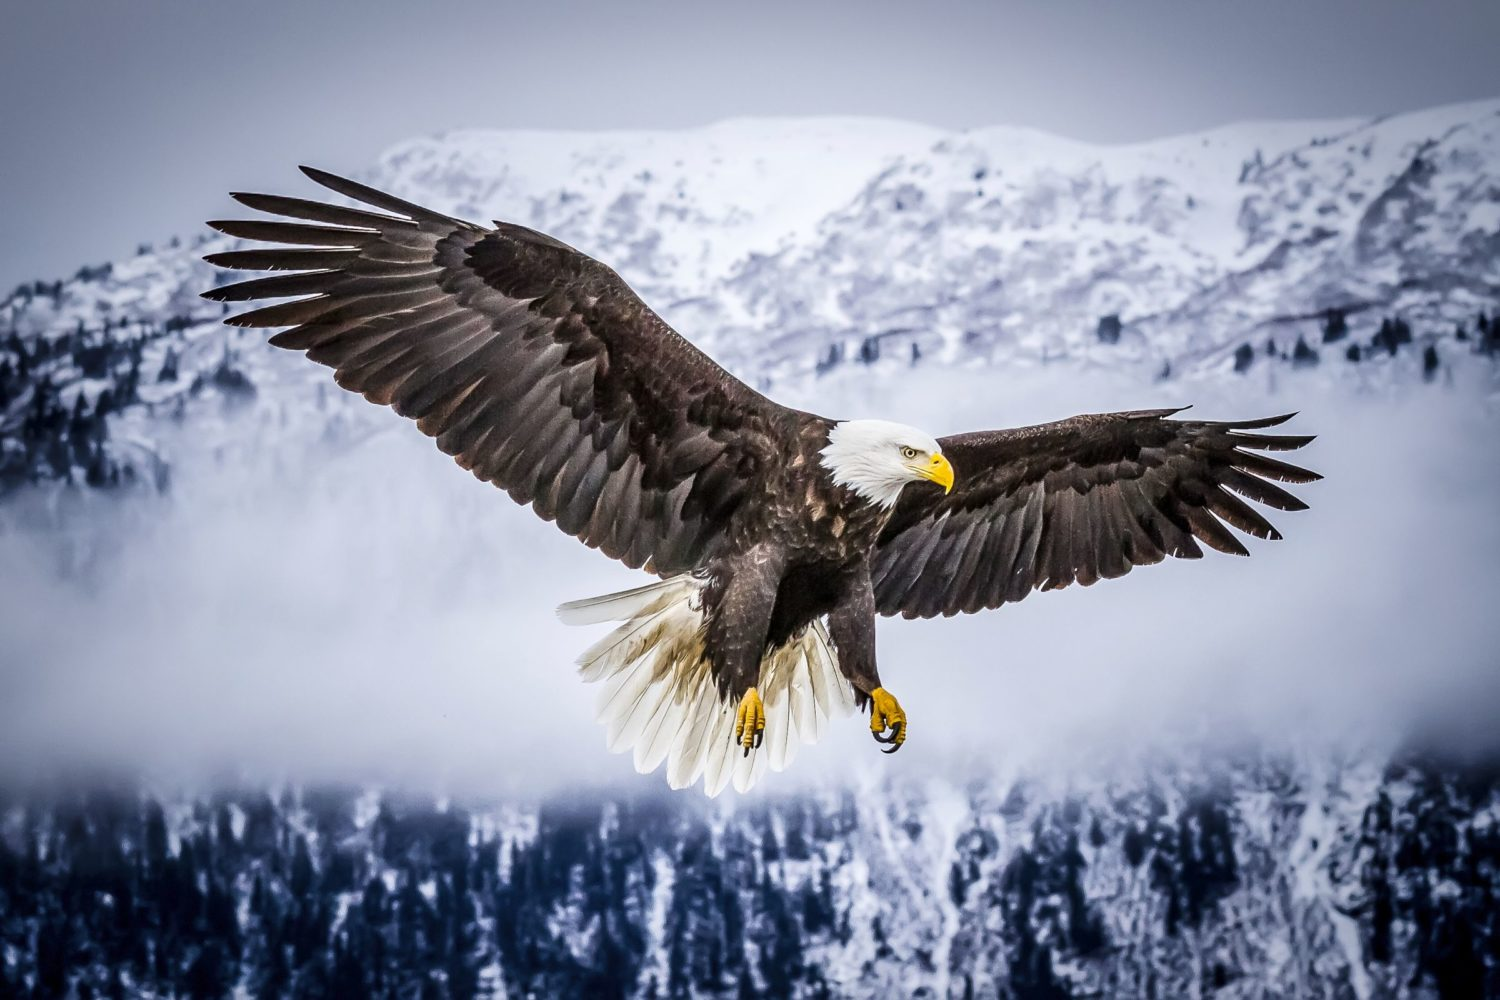 1st place, Avian category, Lew Abulafia